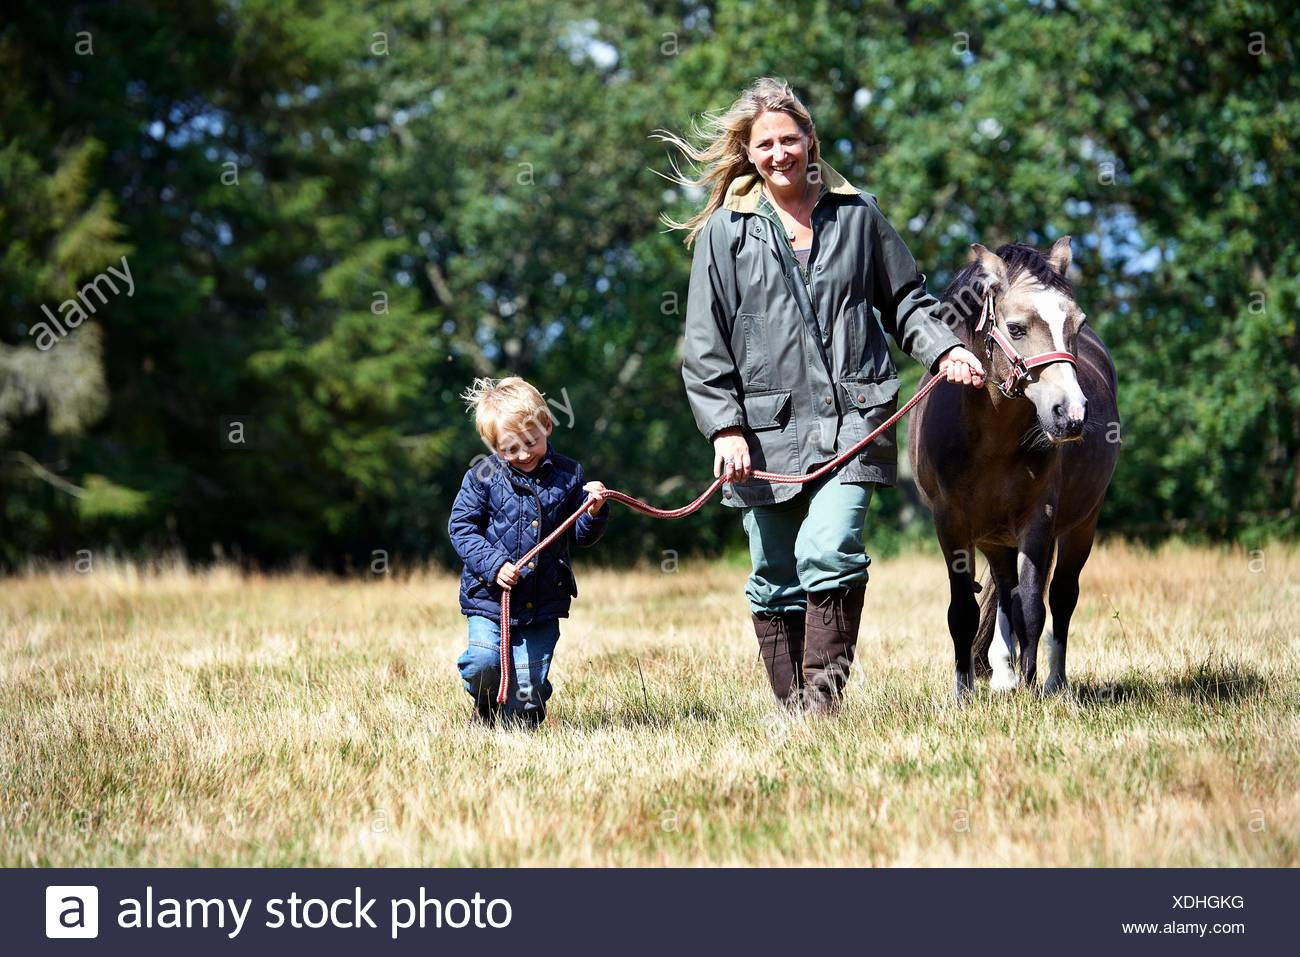 Mother and son walking pony in field - Stock Image